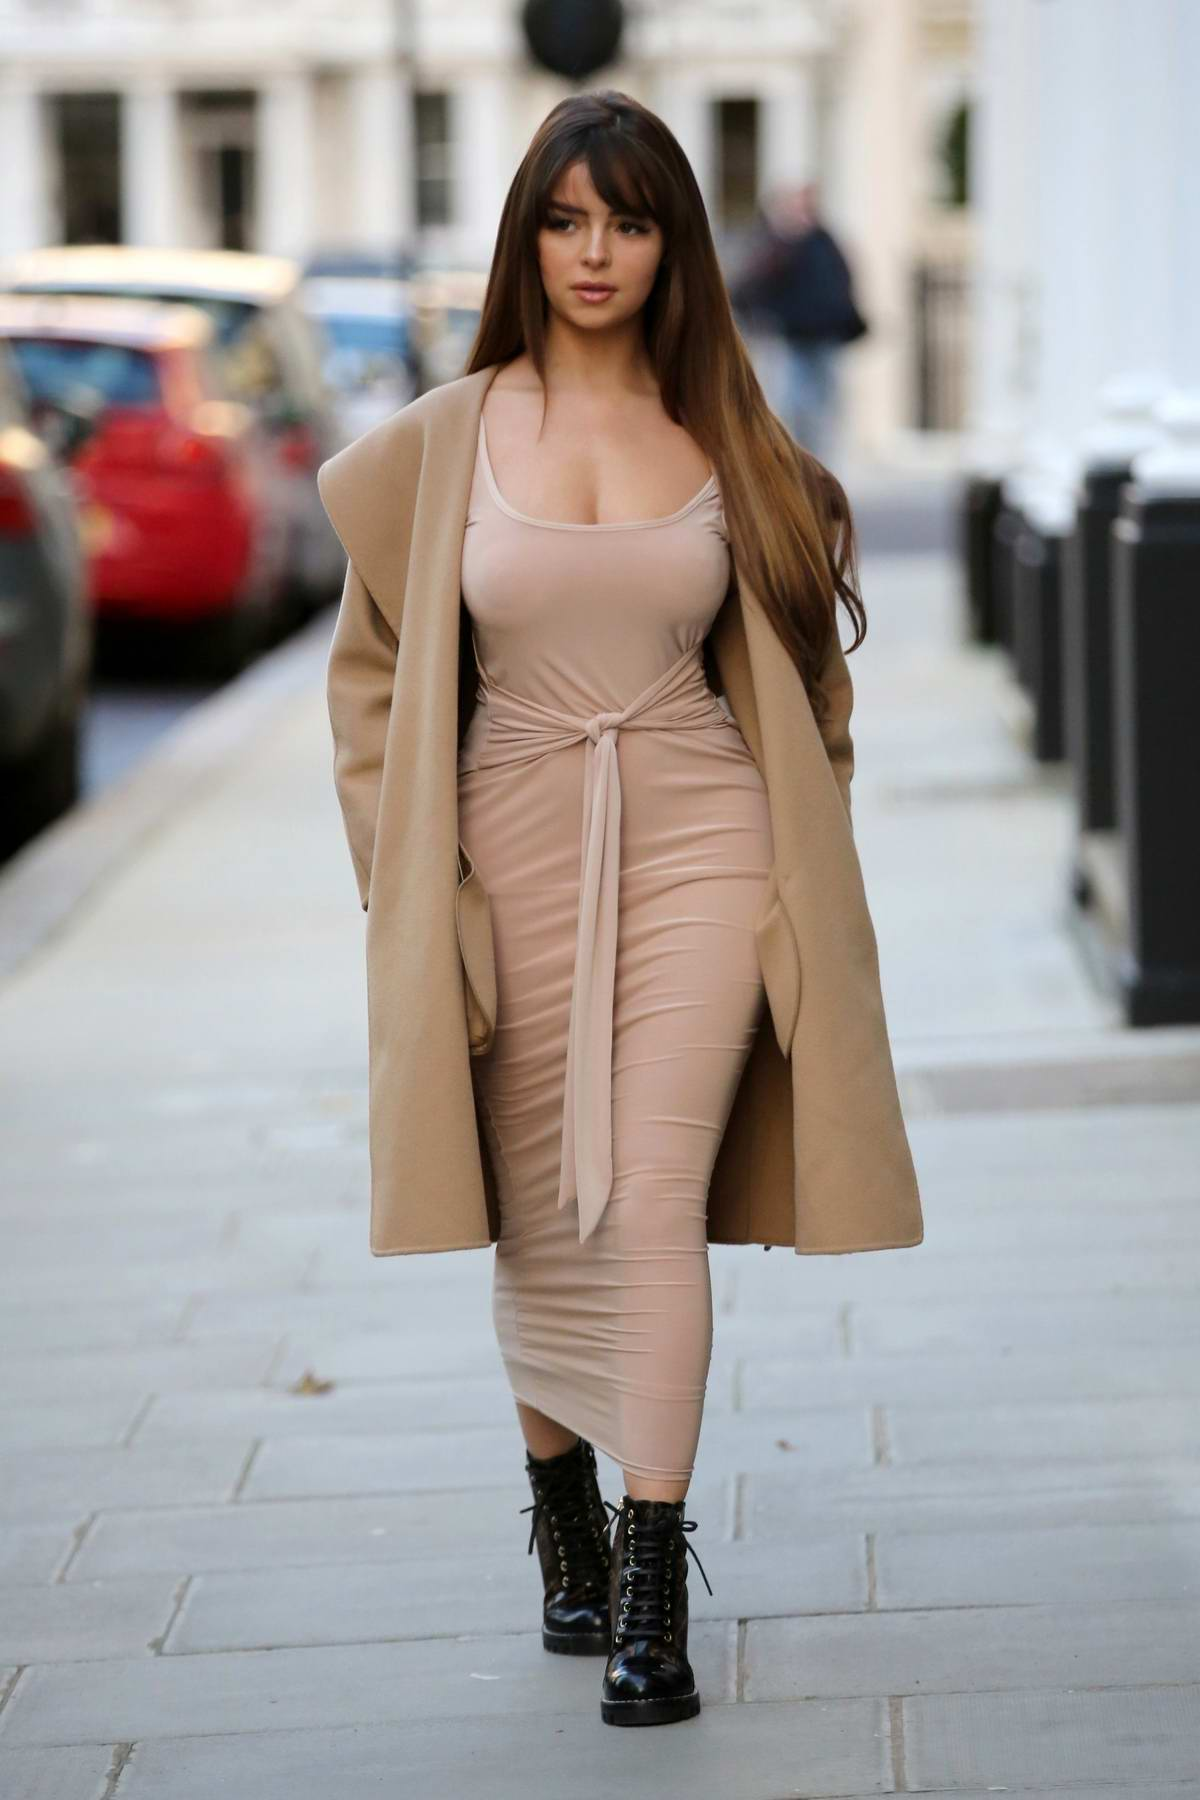 Demi Rose spotted at the LullaBellz pop up boutique in London, UK